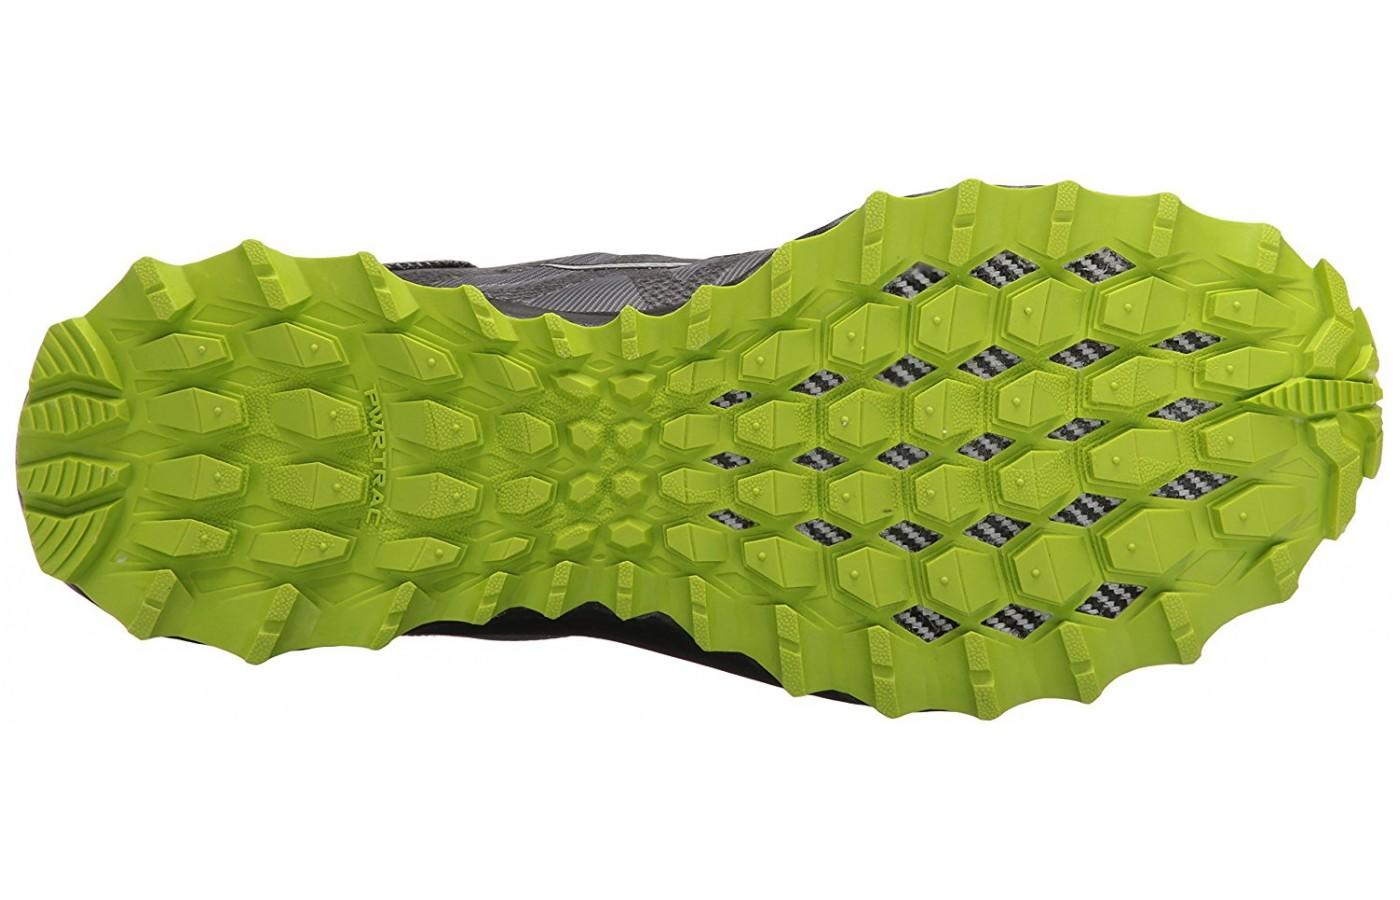 Underfoot the Saucony Peregrine 7 has a PWRTRAC outsole